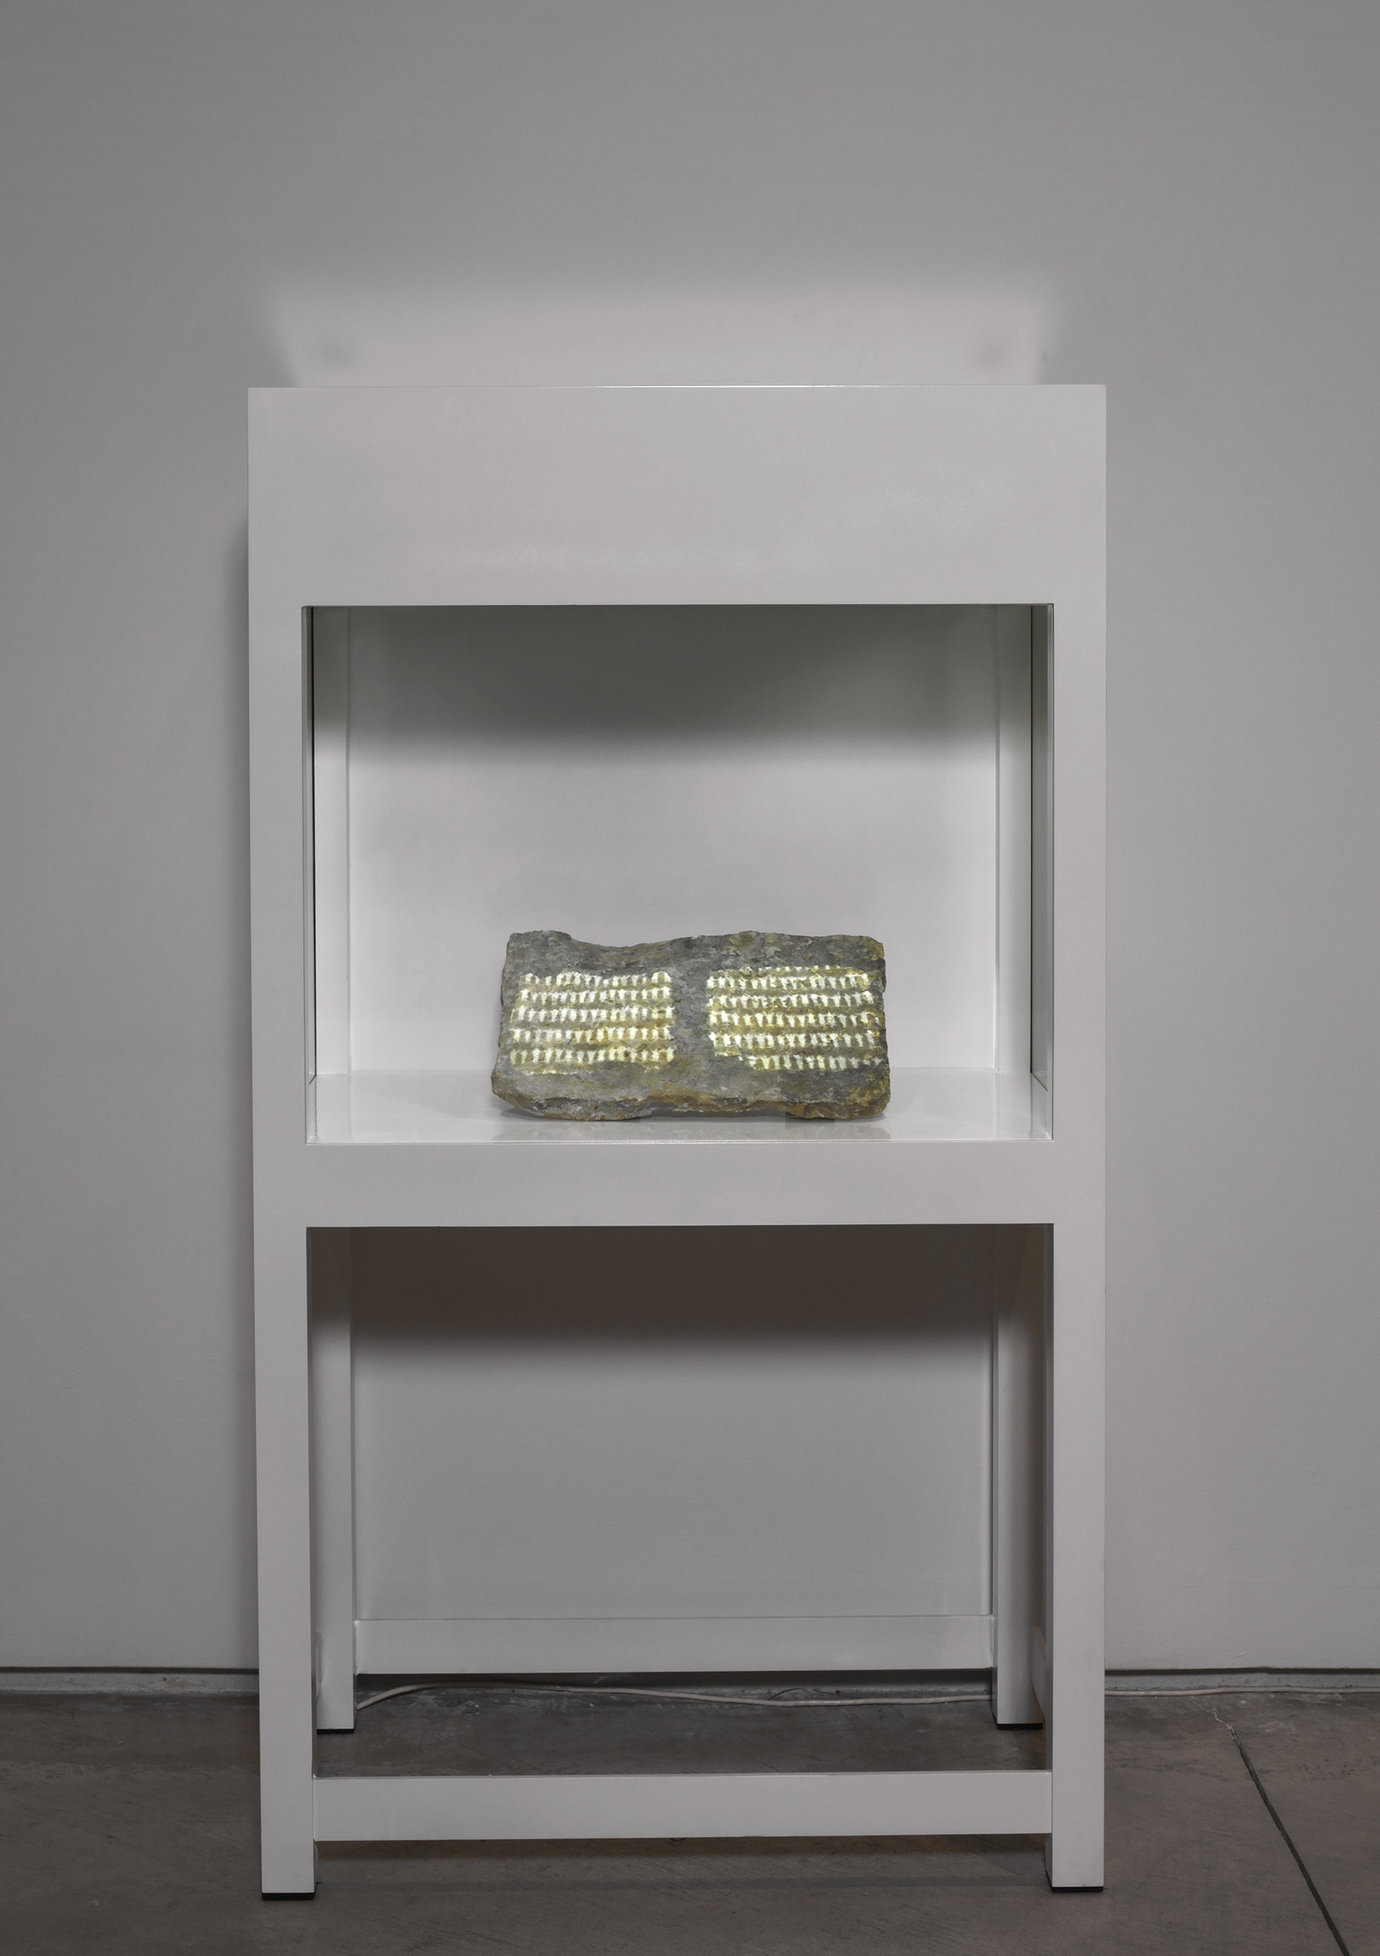 ", 2004. steel vitrine with glass, stone and video projection, 57-1/8"" x 32"" x 20"" (145.1 cm x 81.3 cm x 50.8 cm)."